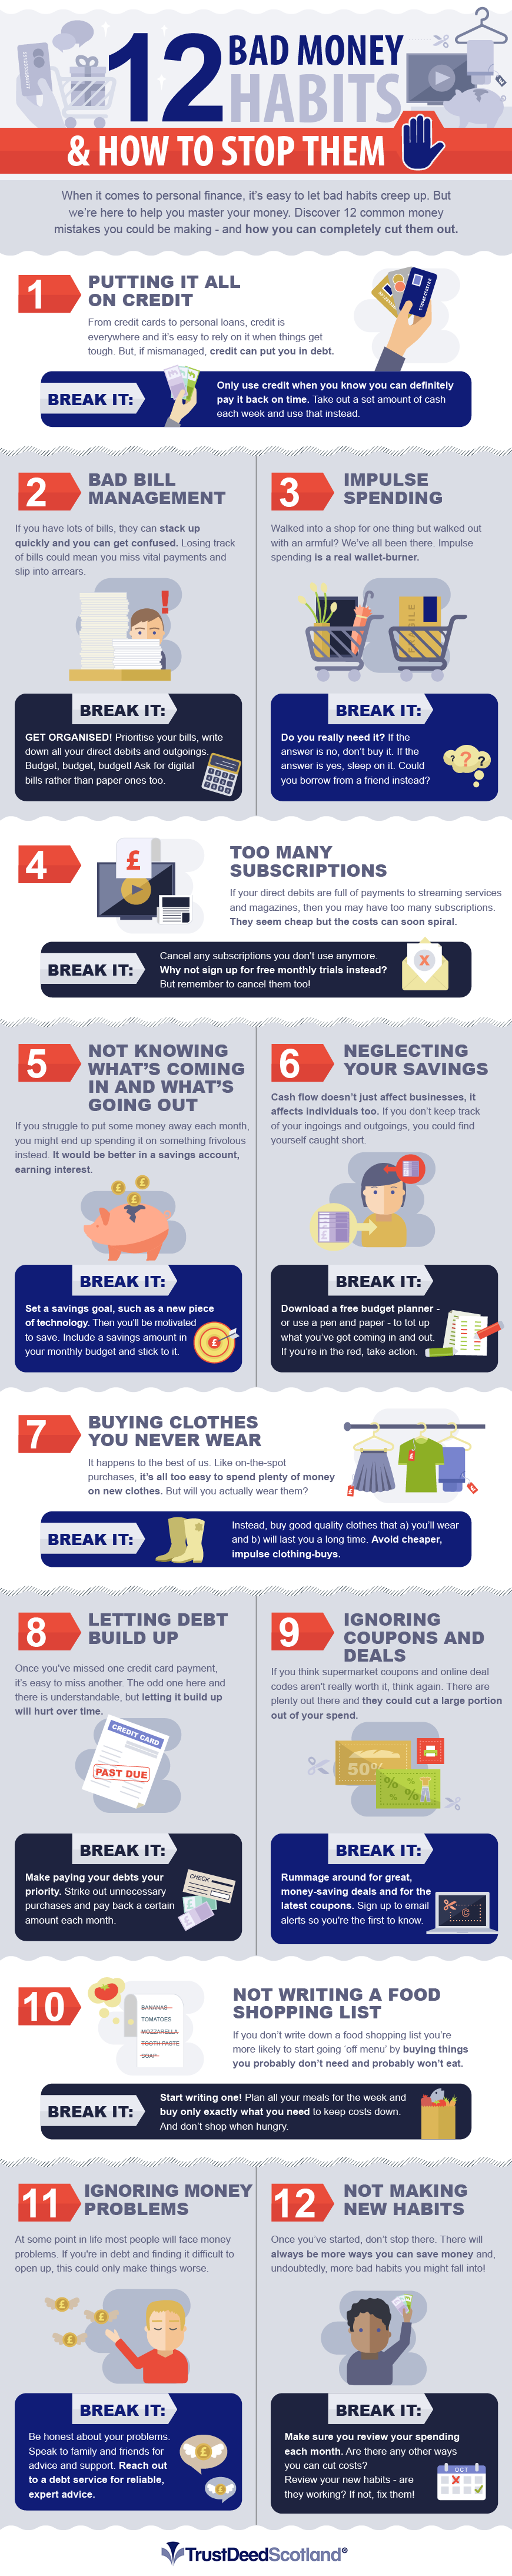 12 Bad Money Habits And How To Stop Them - #infographic